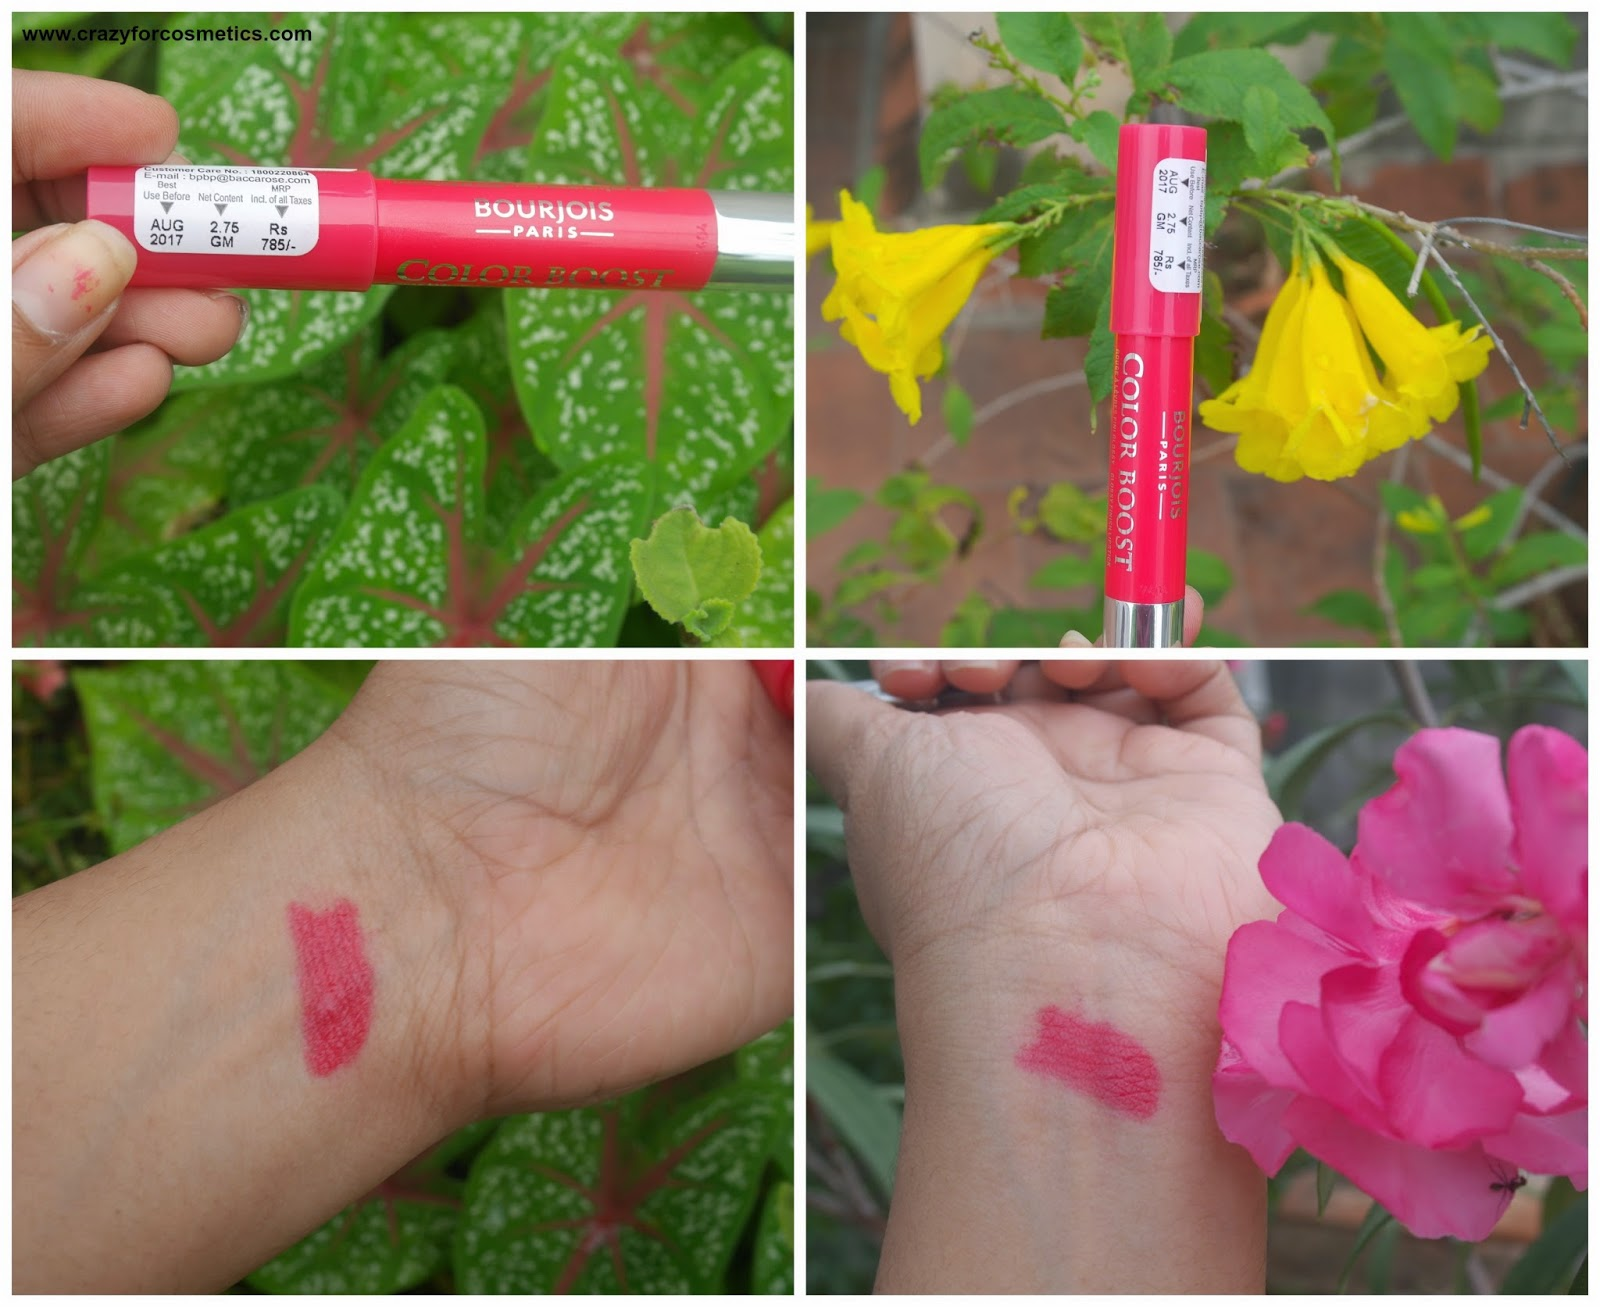 Bourjois Paris Color Boost Lip Crayon in Red Sunrise Swatches for Indian women